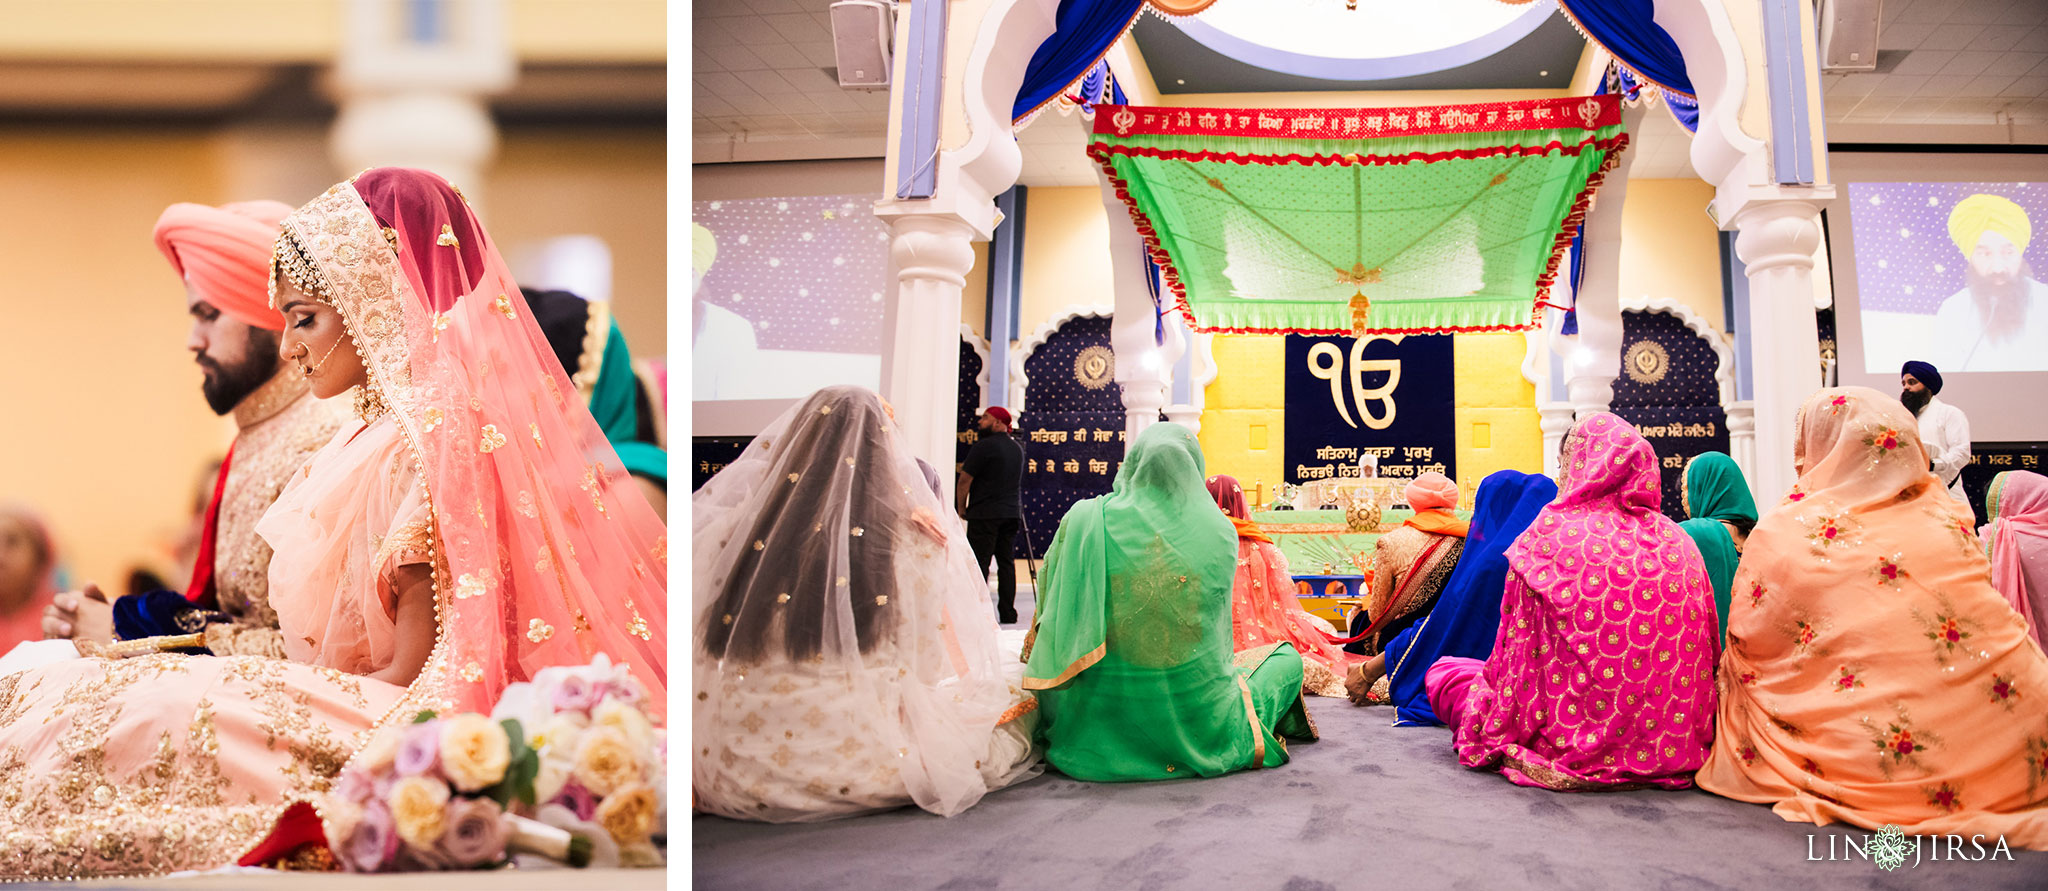 22 gurdwara sahib san jose punjabi sikh indian wedding ceremony photography